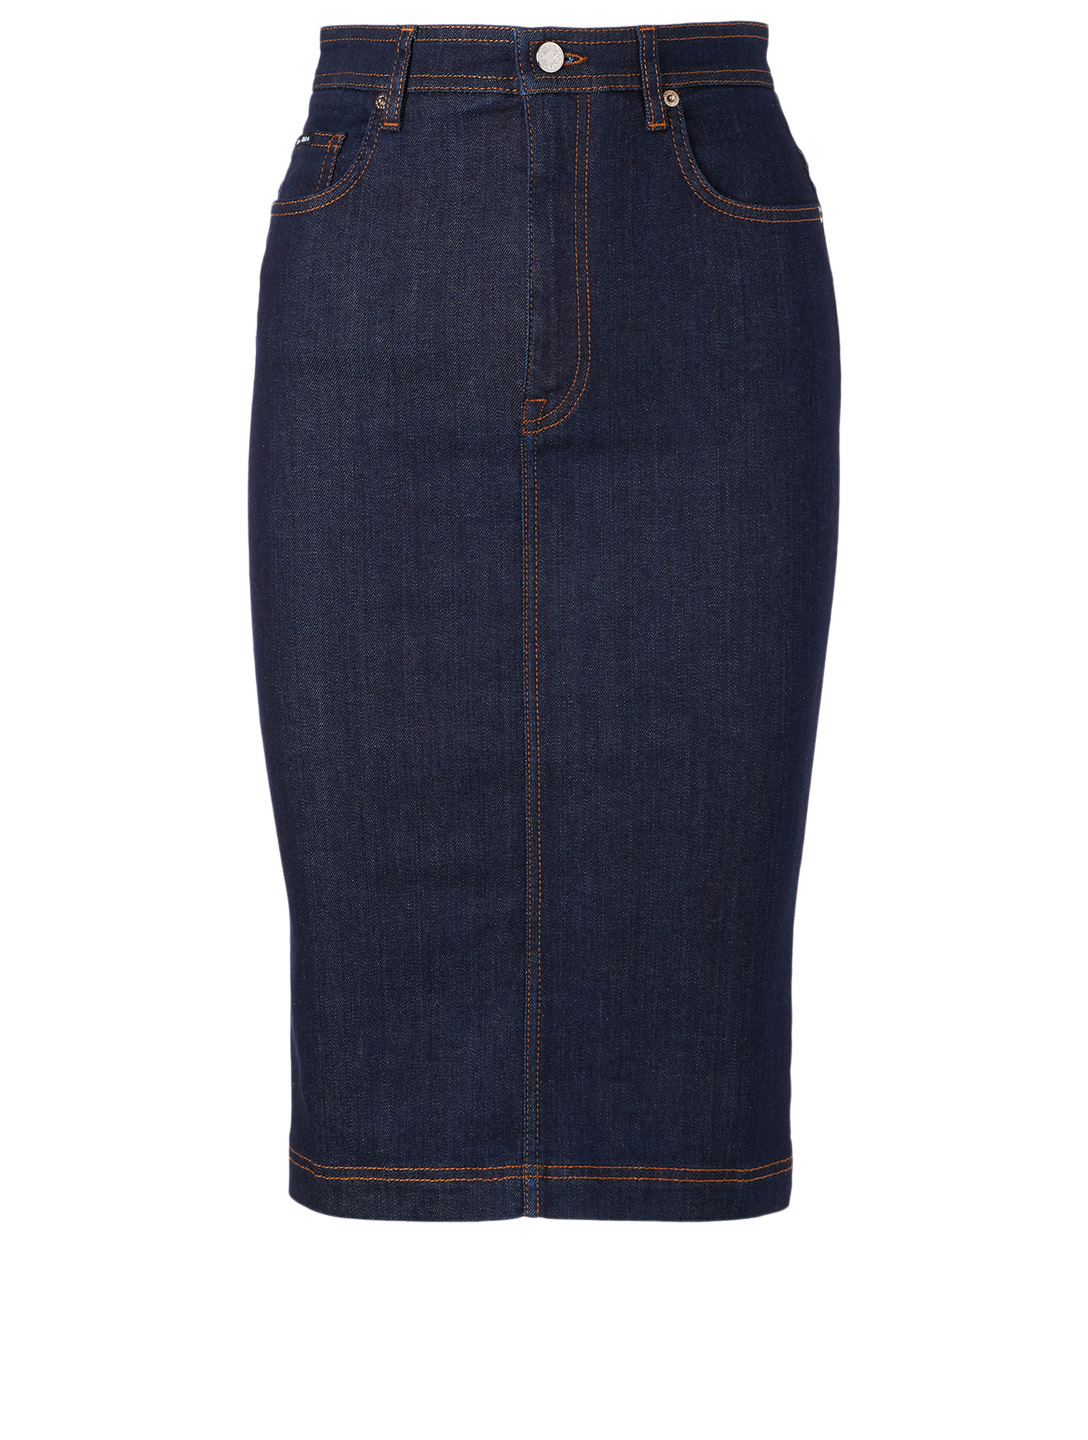 DOLCE & GABBANA Denim Pencil Skirt Women's Blue